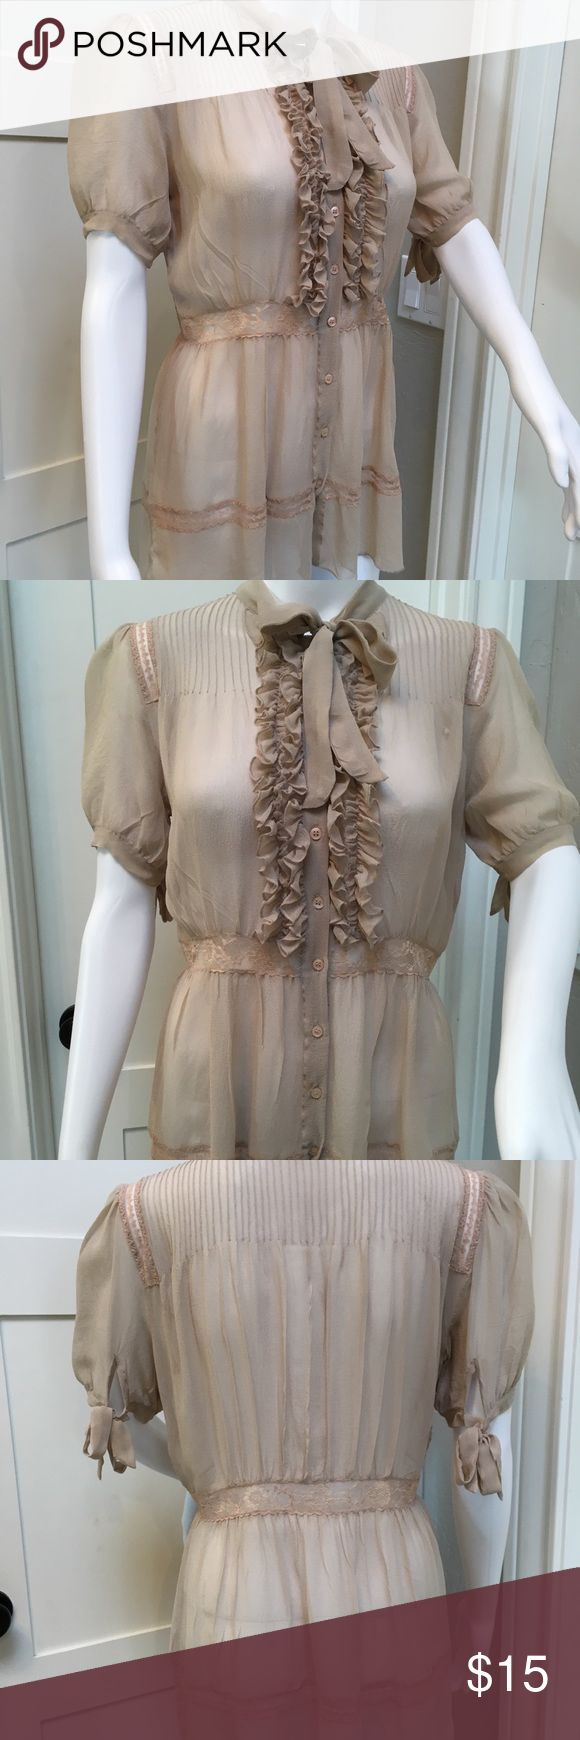 100% Silk Sheer Blouse Sz S Subtle sexy in this sheer nude/tan color silk blouse. Looks killer over a nude cami and black skinny's and stilettos. Great as a layering piece under a blazer as well.   Very delicate, well cared for.  Please ask questions. Thanks for looking! Hanna Jo Tops Blouses